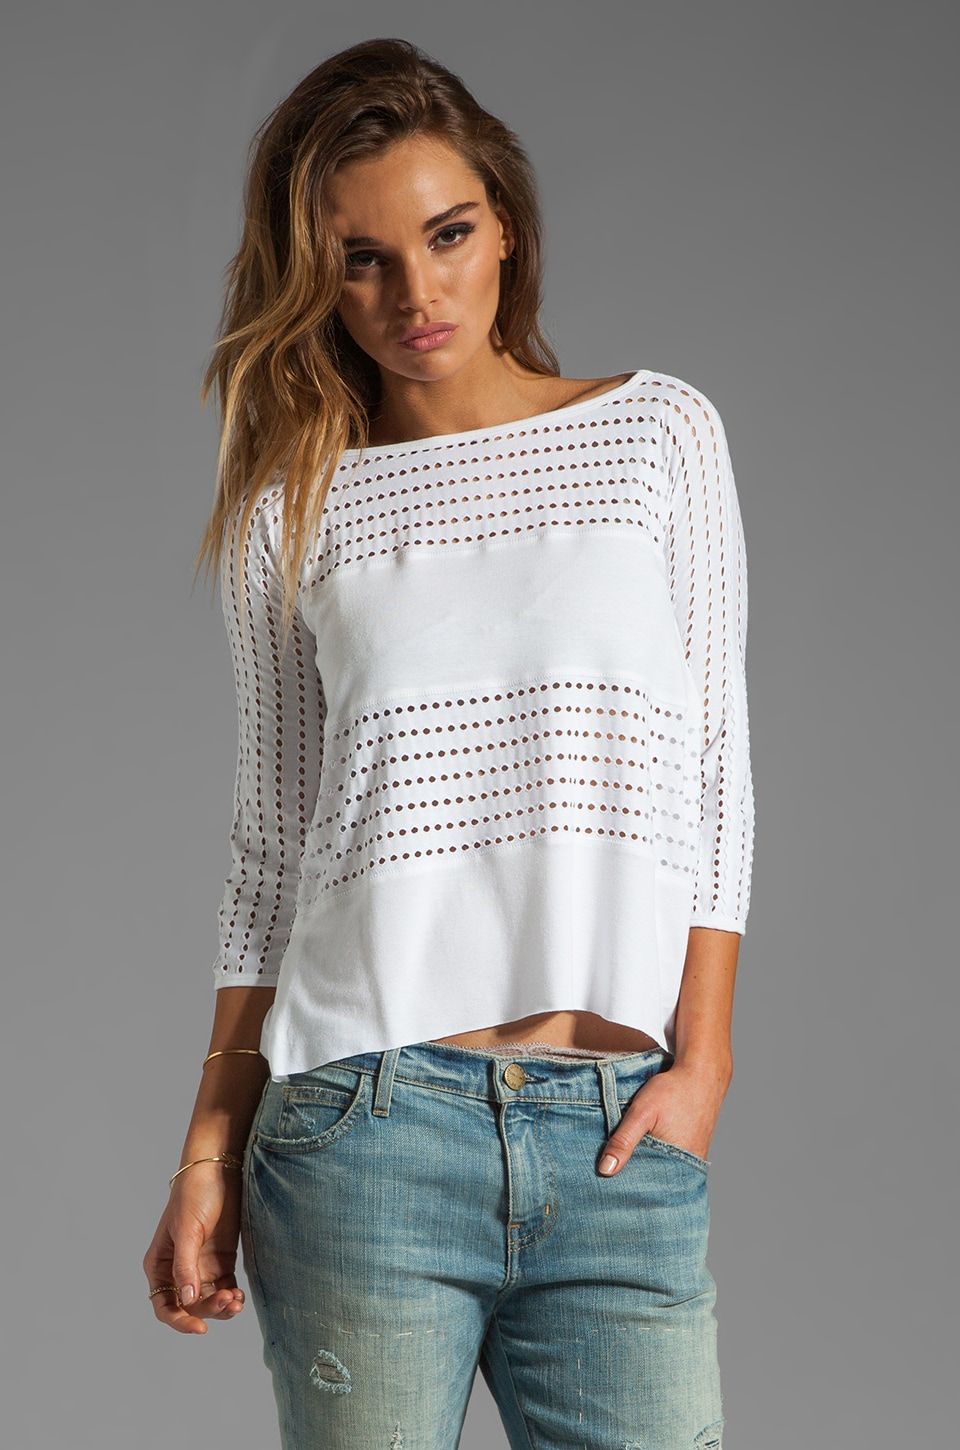 Bailey 44 Tomb Top in White